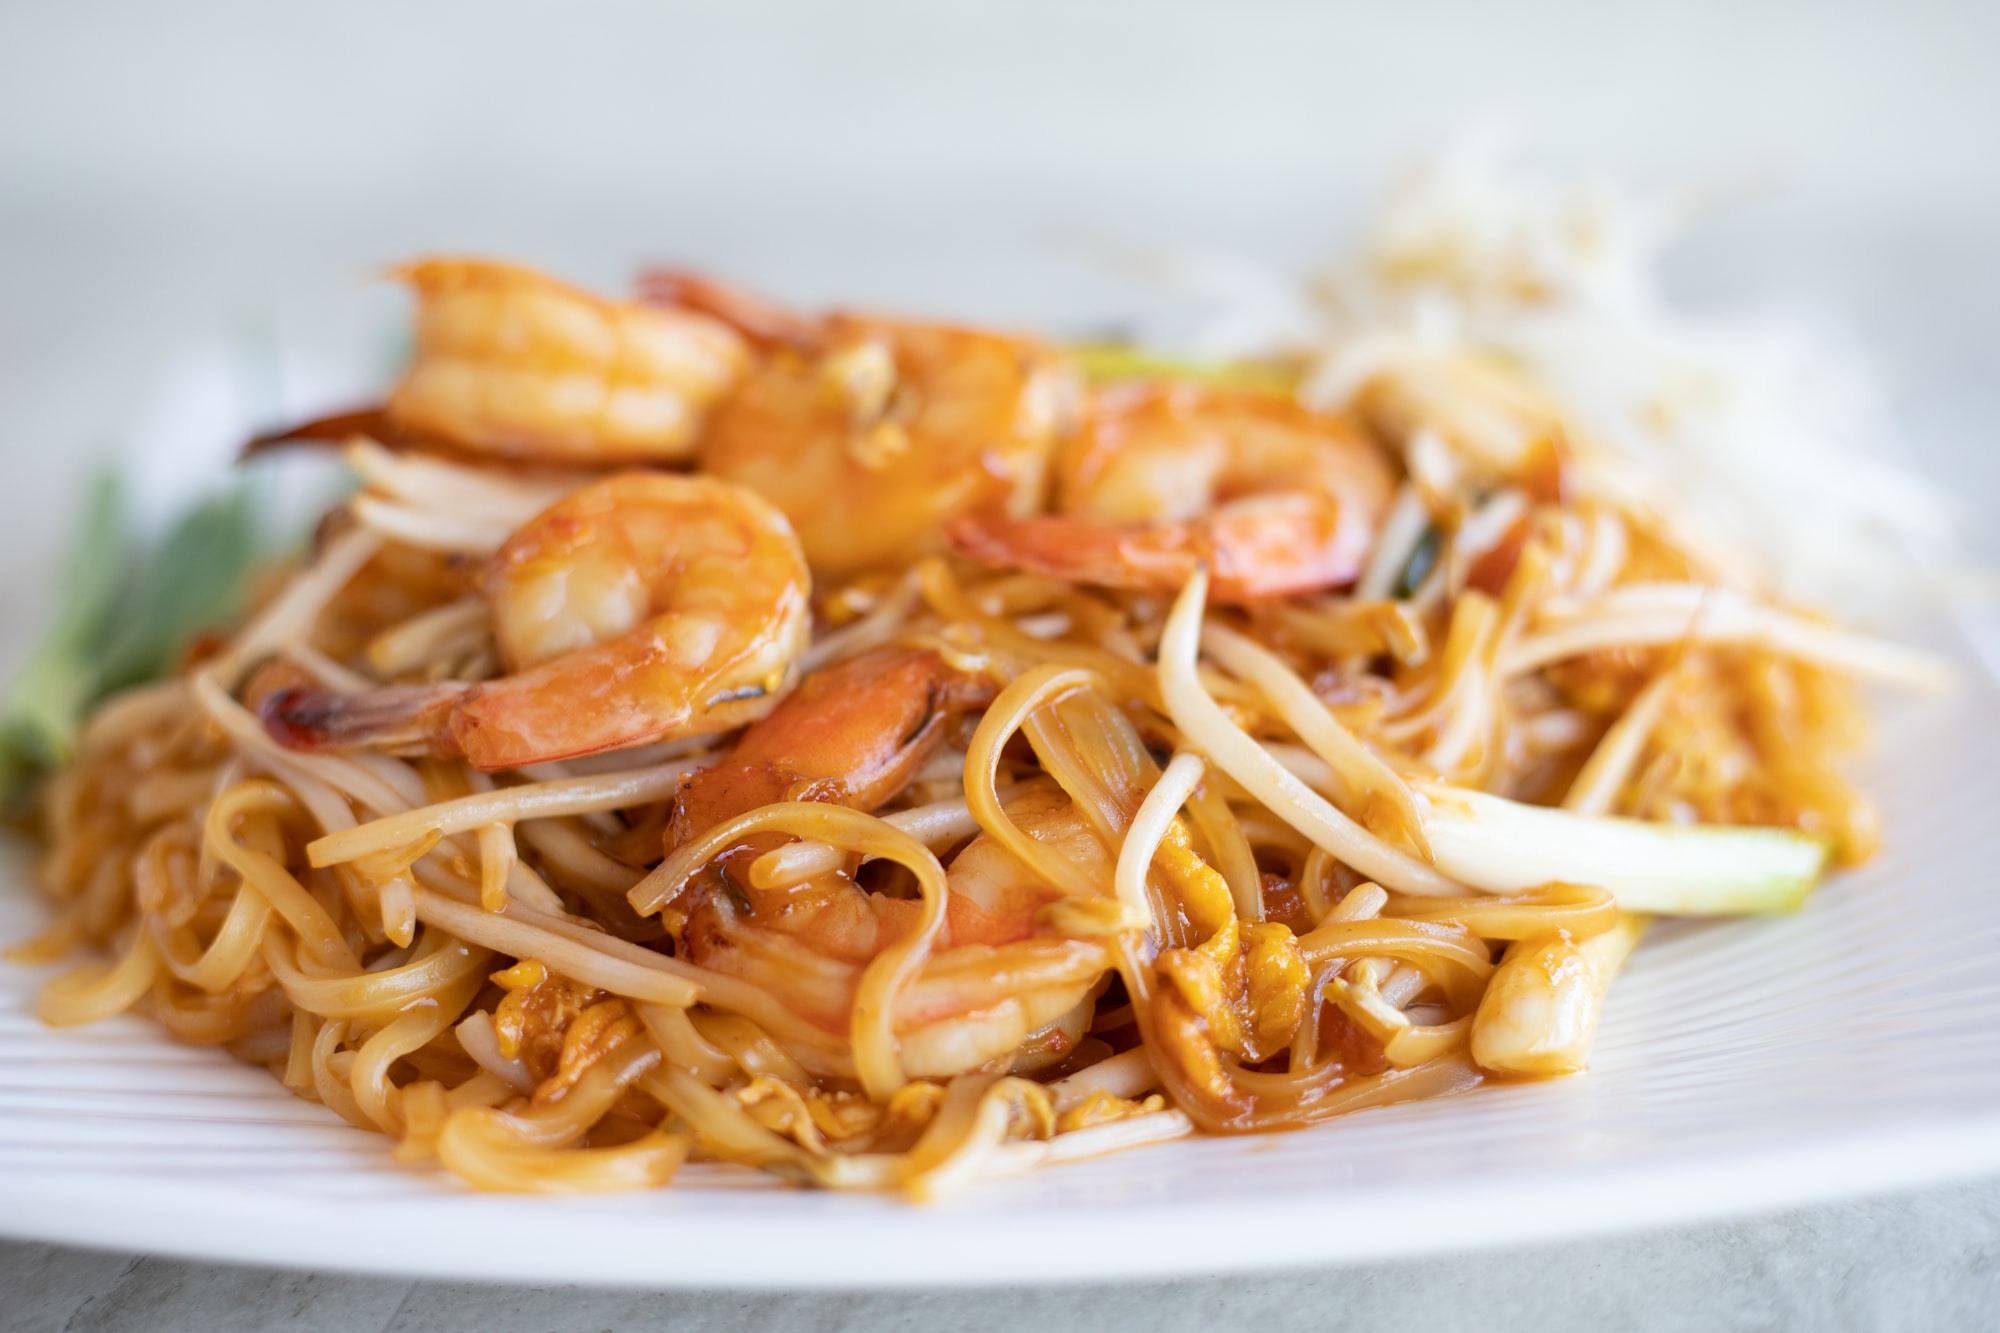 What Restaurants in Kansas City have the Best Thai Food?